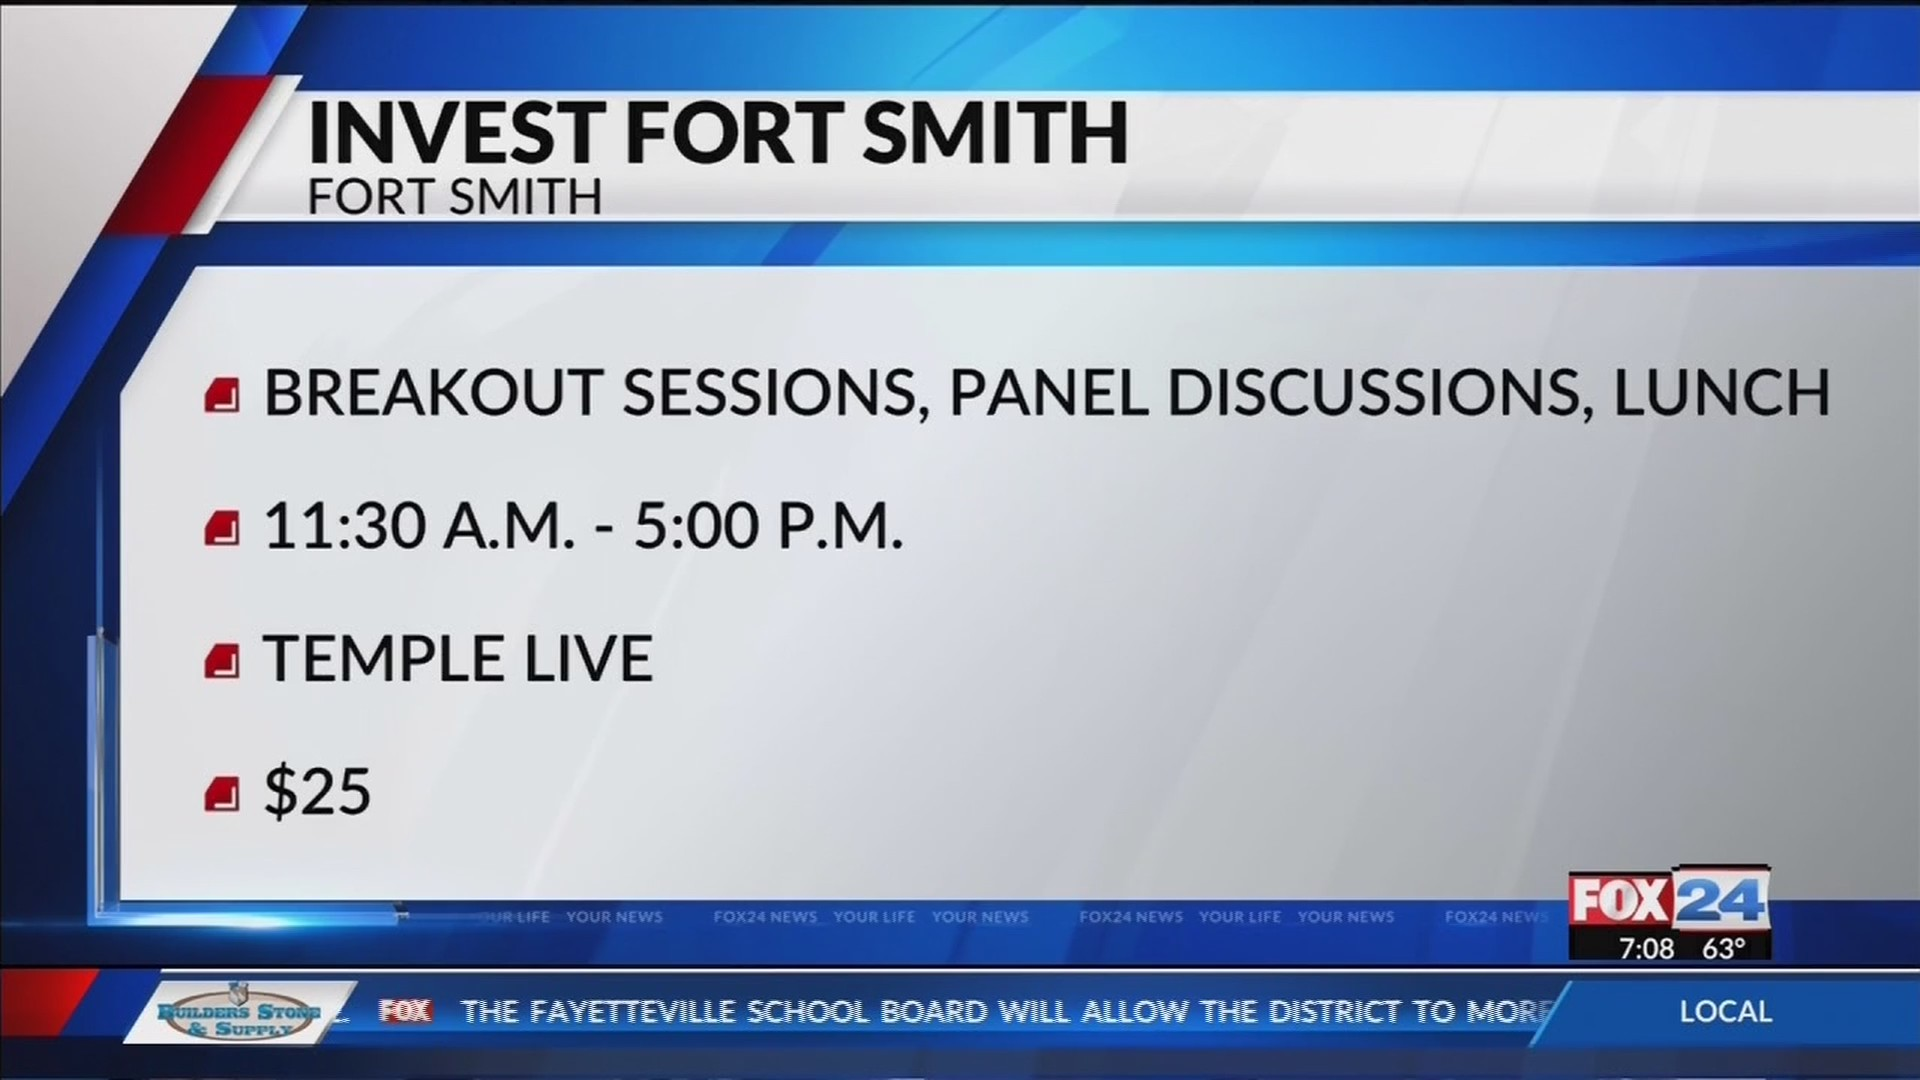 Investment_Opportunities_for_Fort_Smith__0_20181030124912